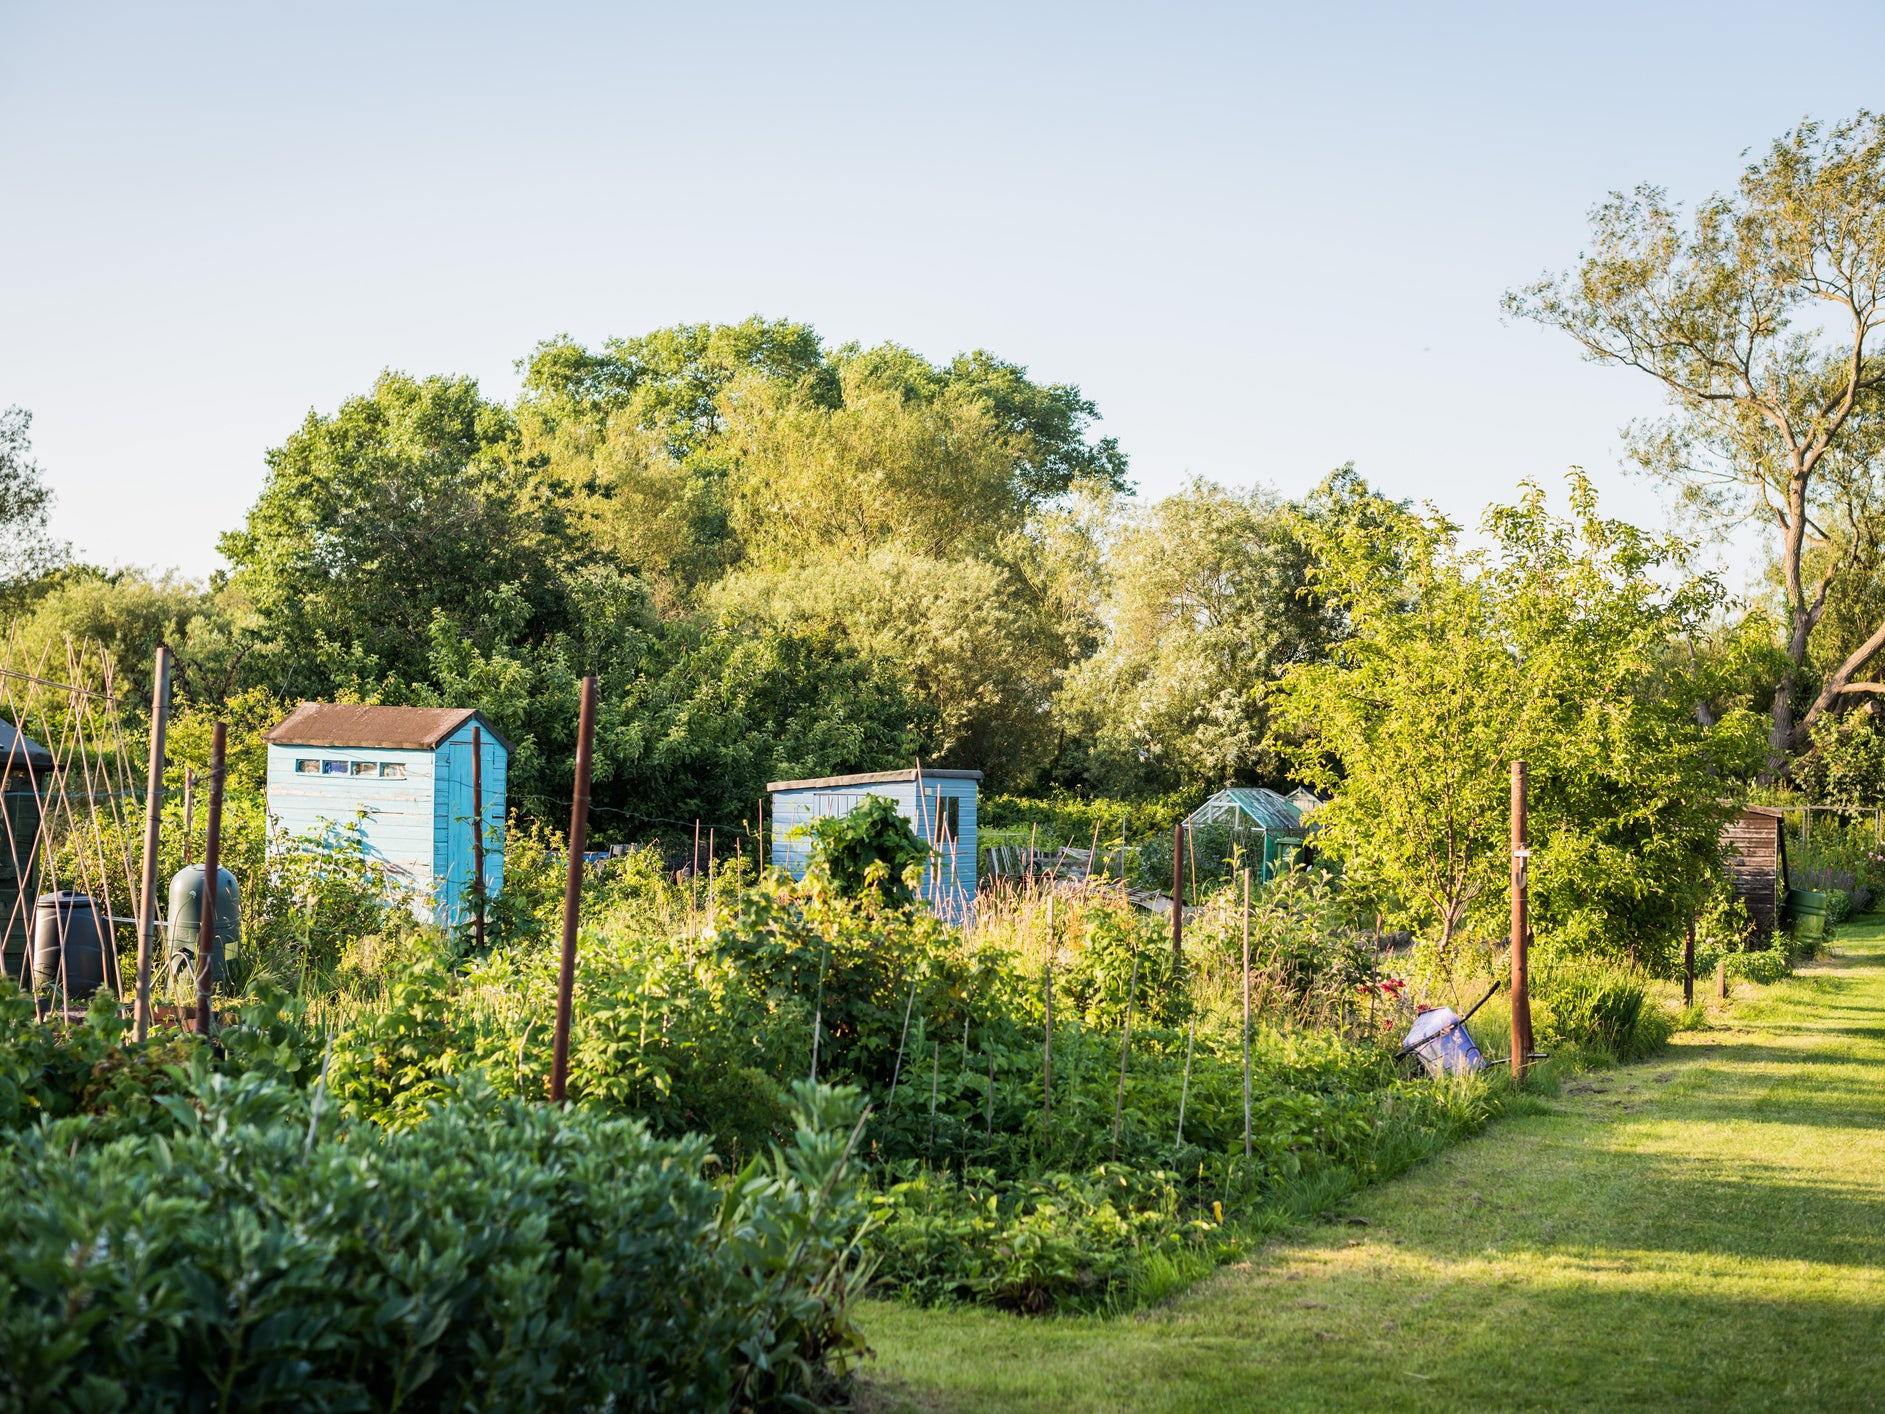 As gardeners turn to growing own food, research reveals dramatic decline in urban allotments